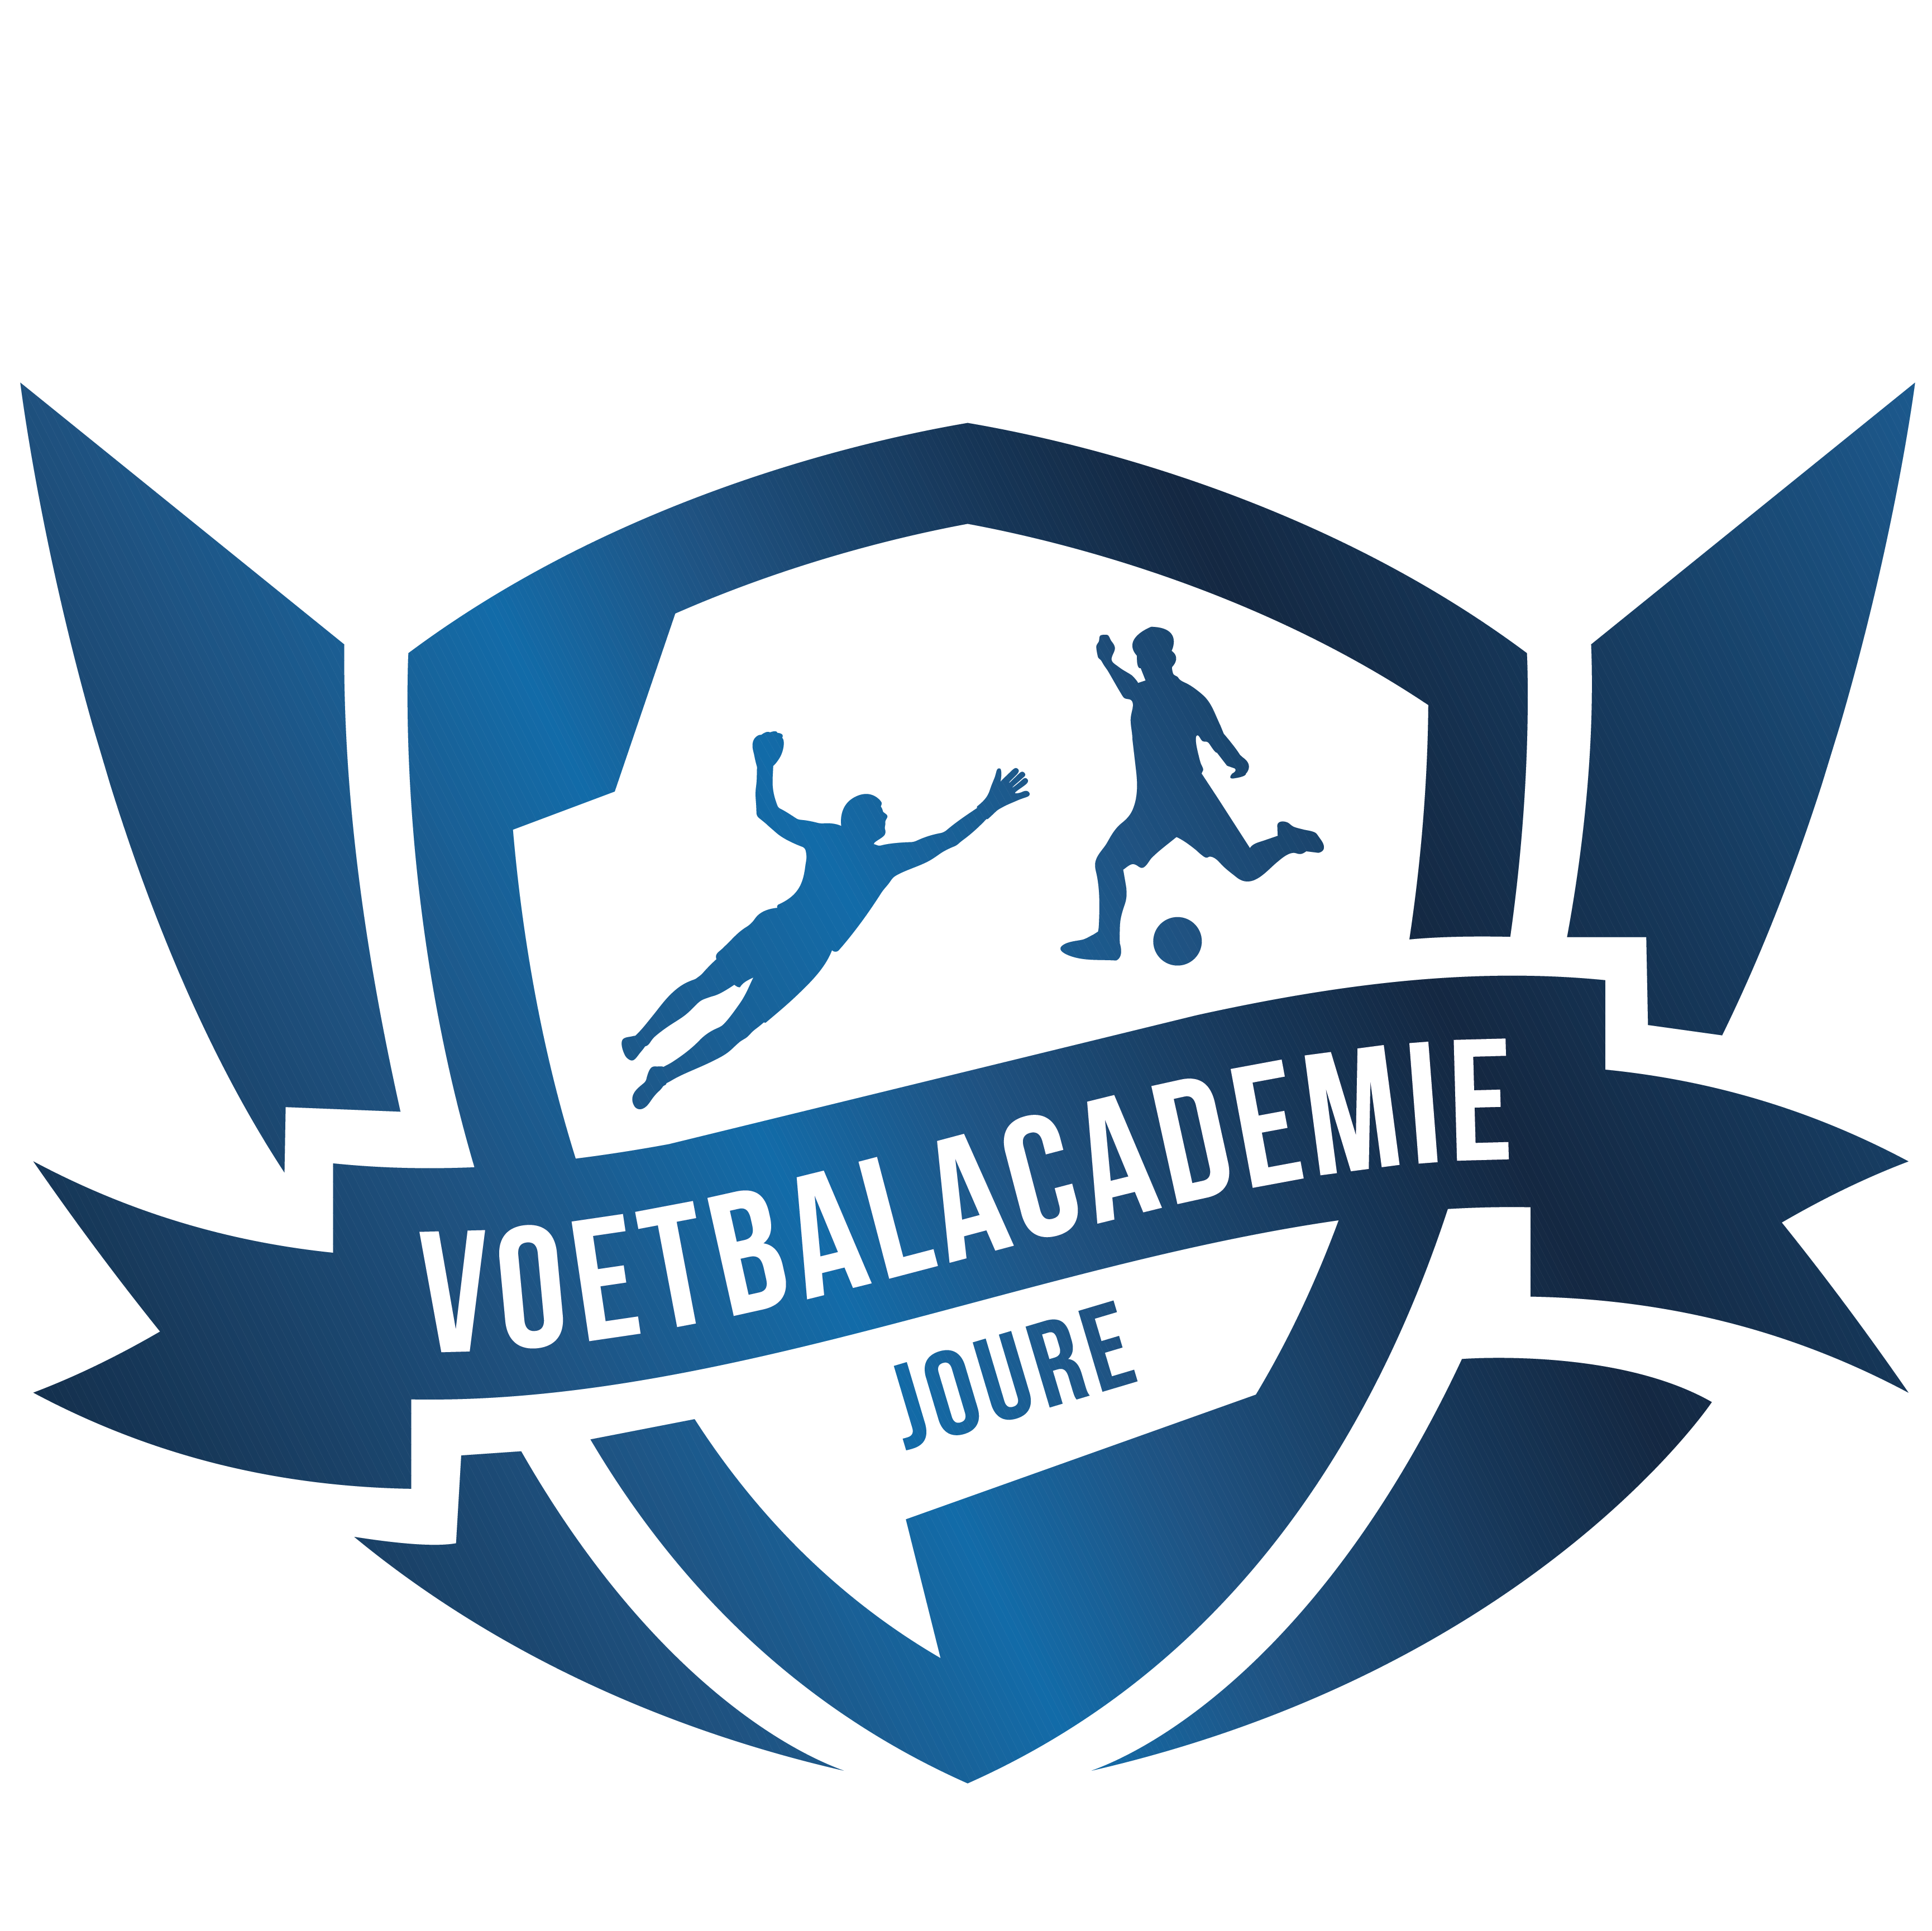 VA Joure Logo